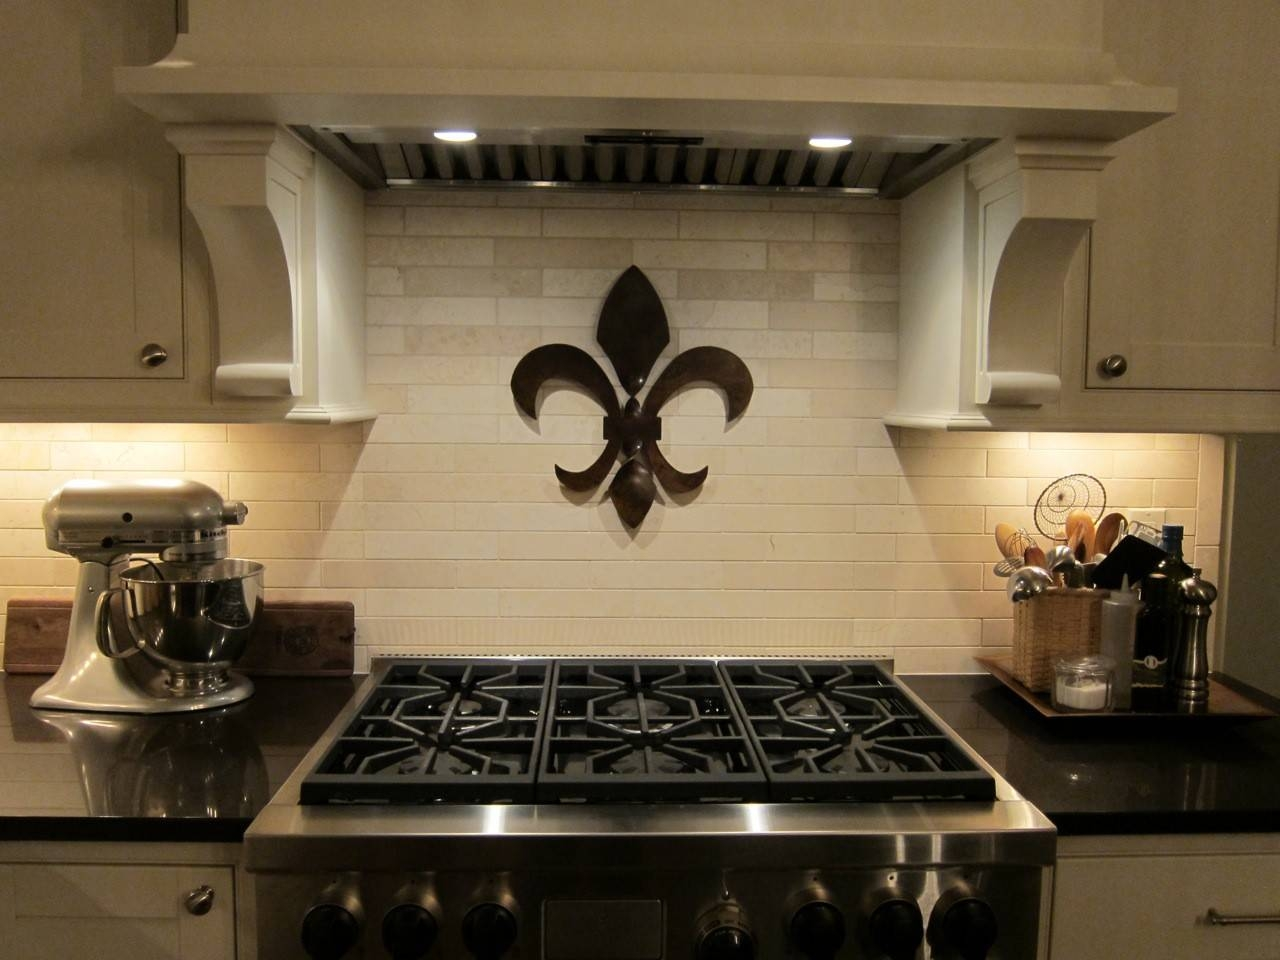 Fleur De Lis Wall Decor With Regard To Latest Metal Fleur De Lis Wall Art (View 15 of 25)